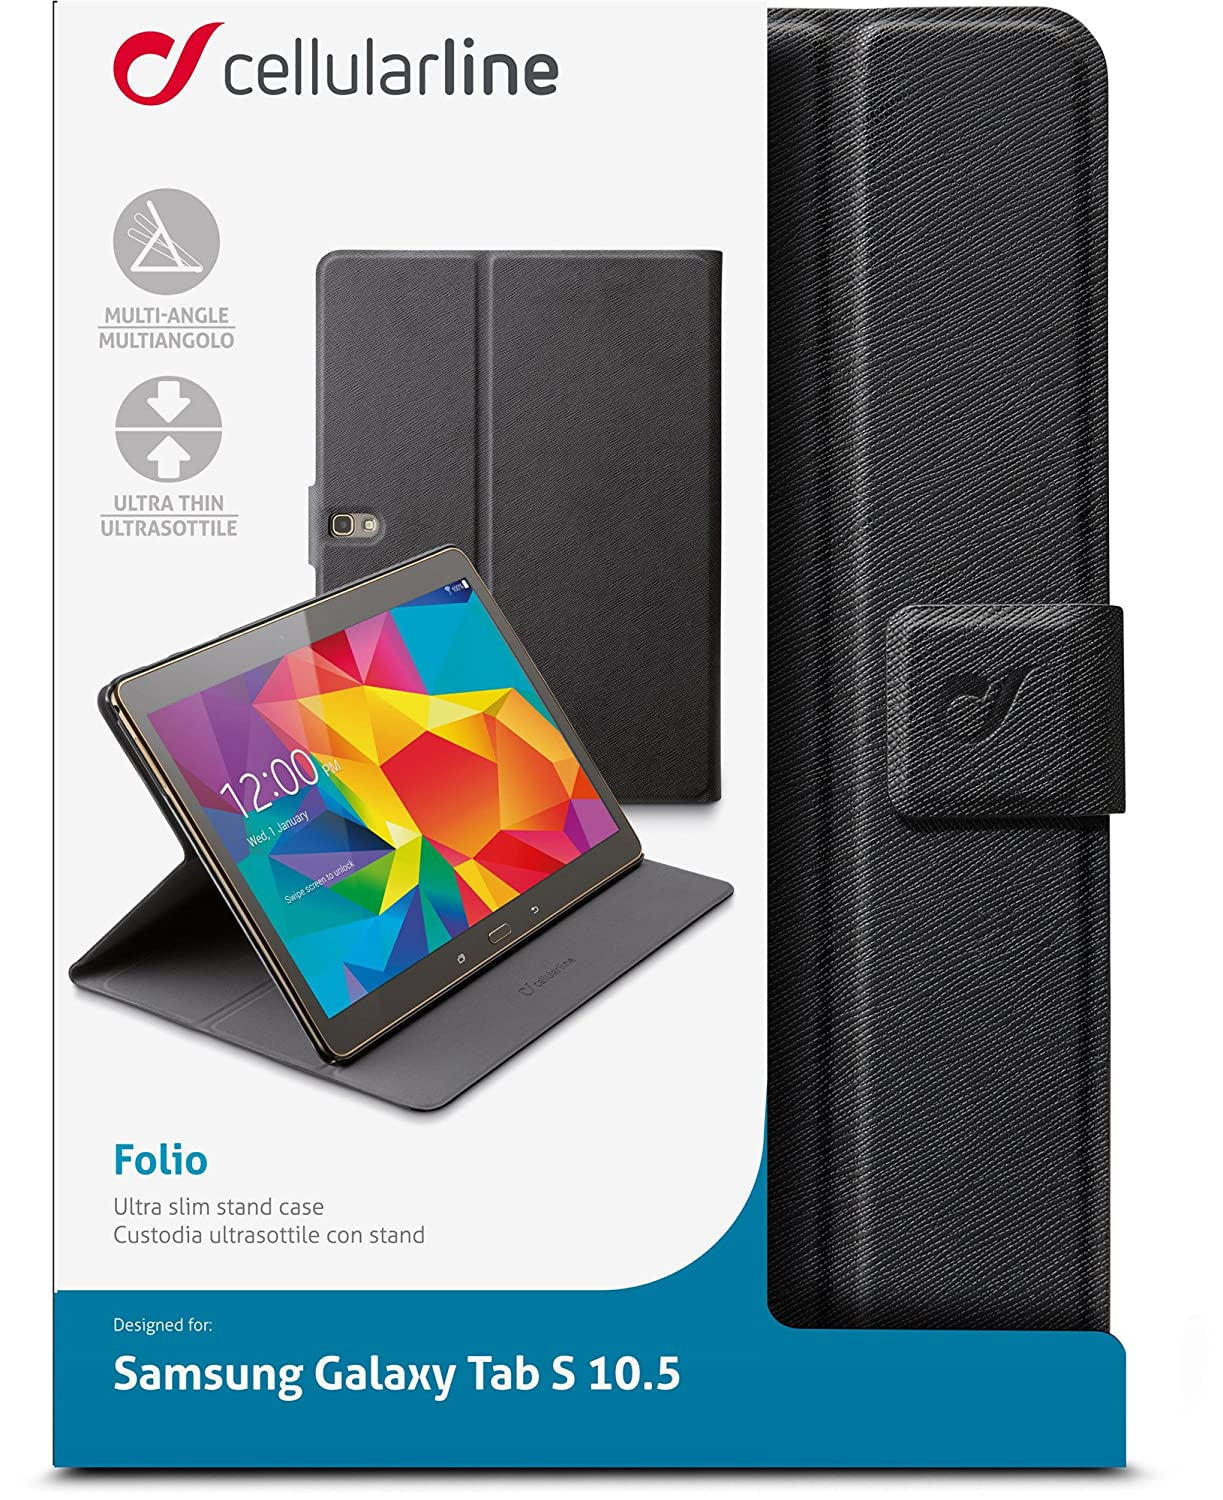 custodia cellularline galaxy tab s 10.5